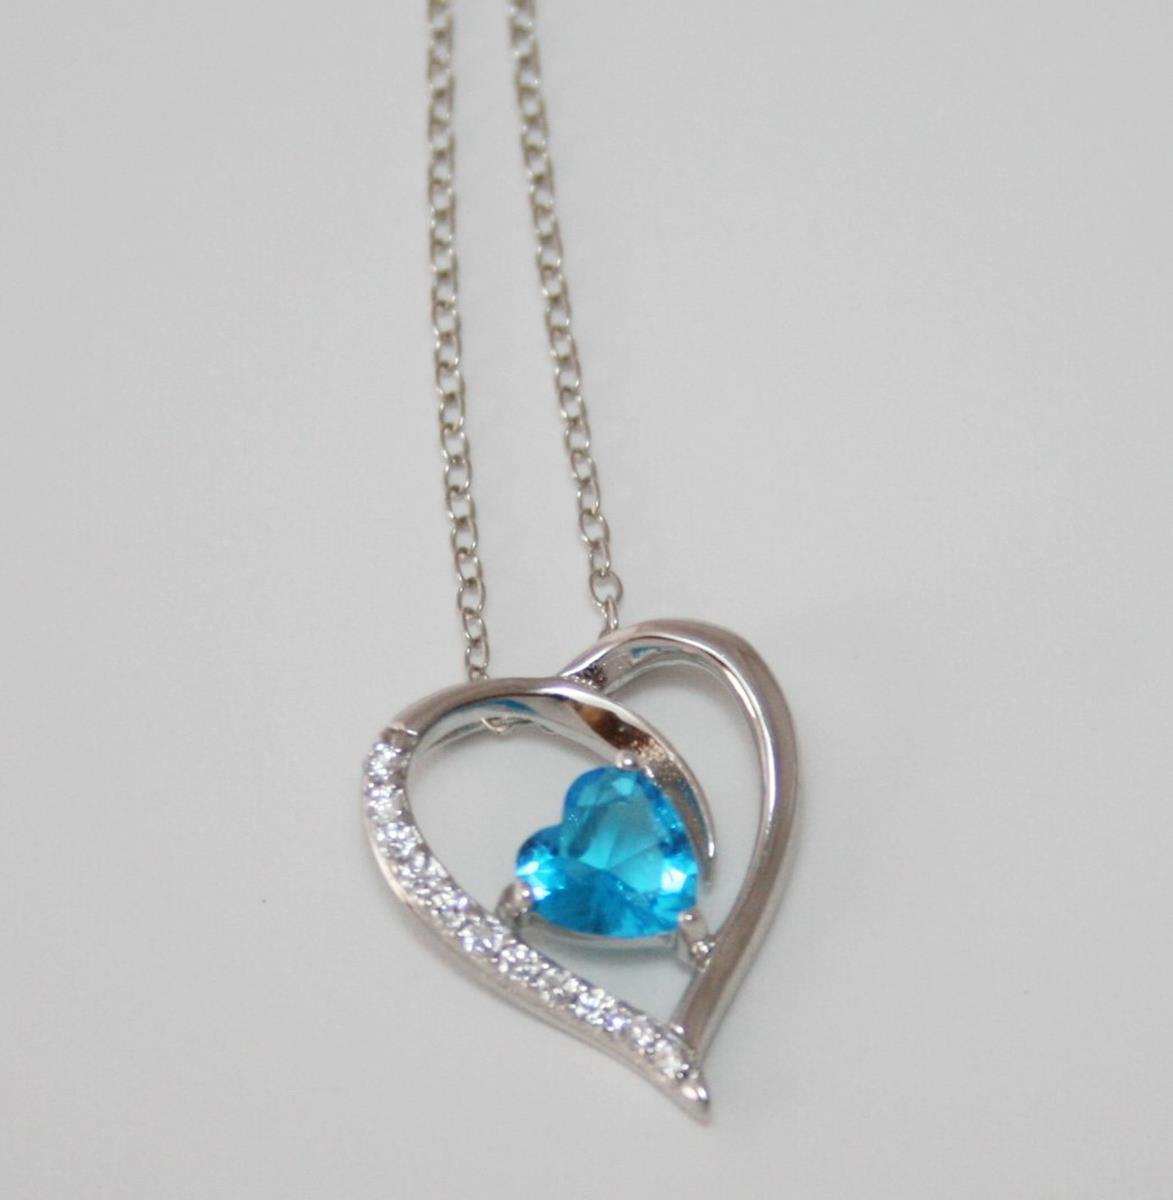 Silver Tone Chain Necklace with Aqua CZ Heart Pendant NEW  J227